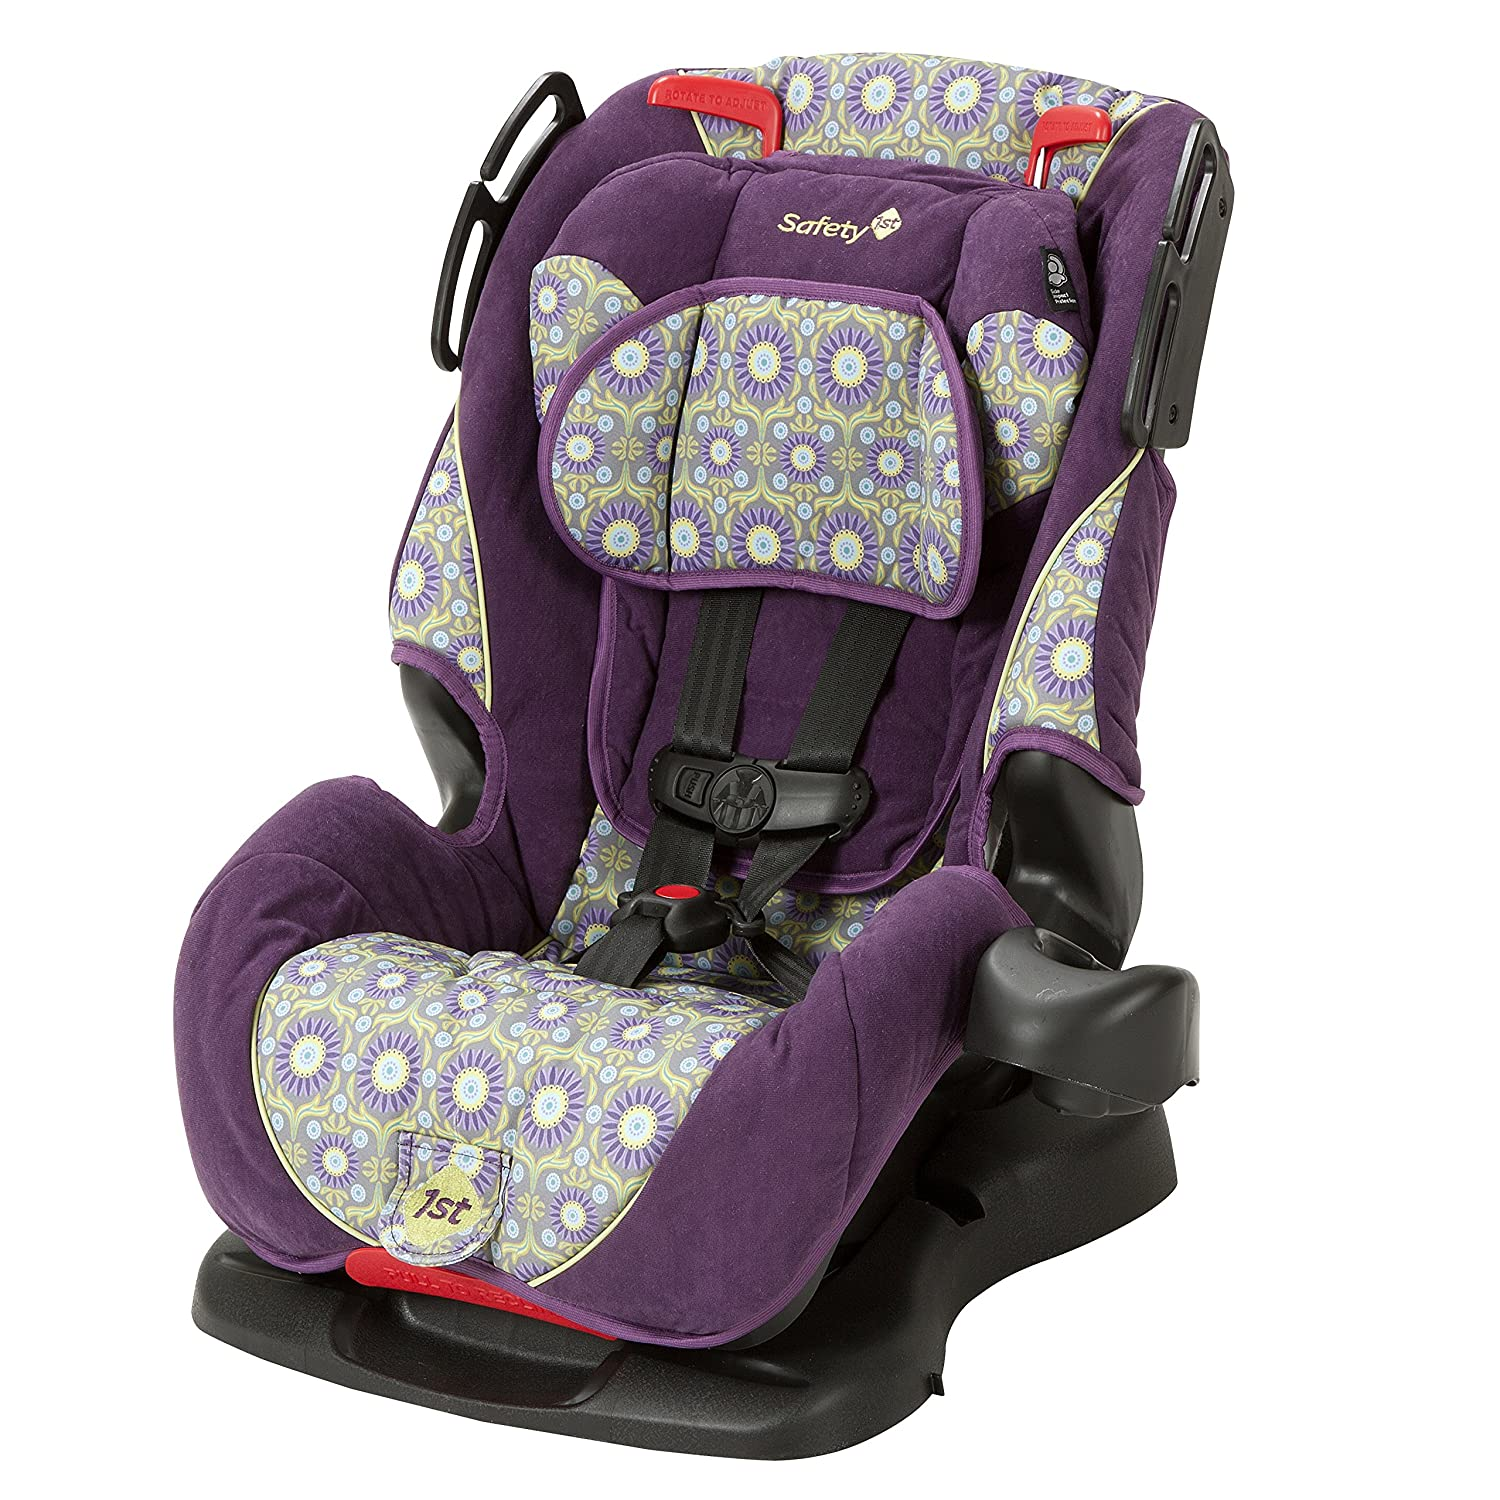 One Sport Convertible Car Seat, Anna